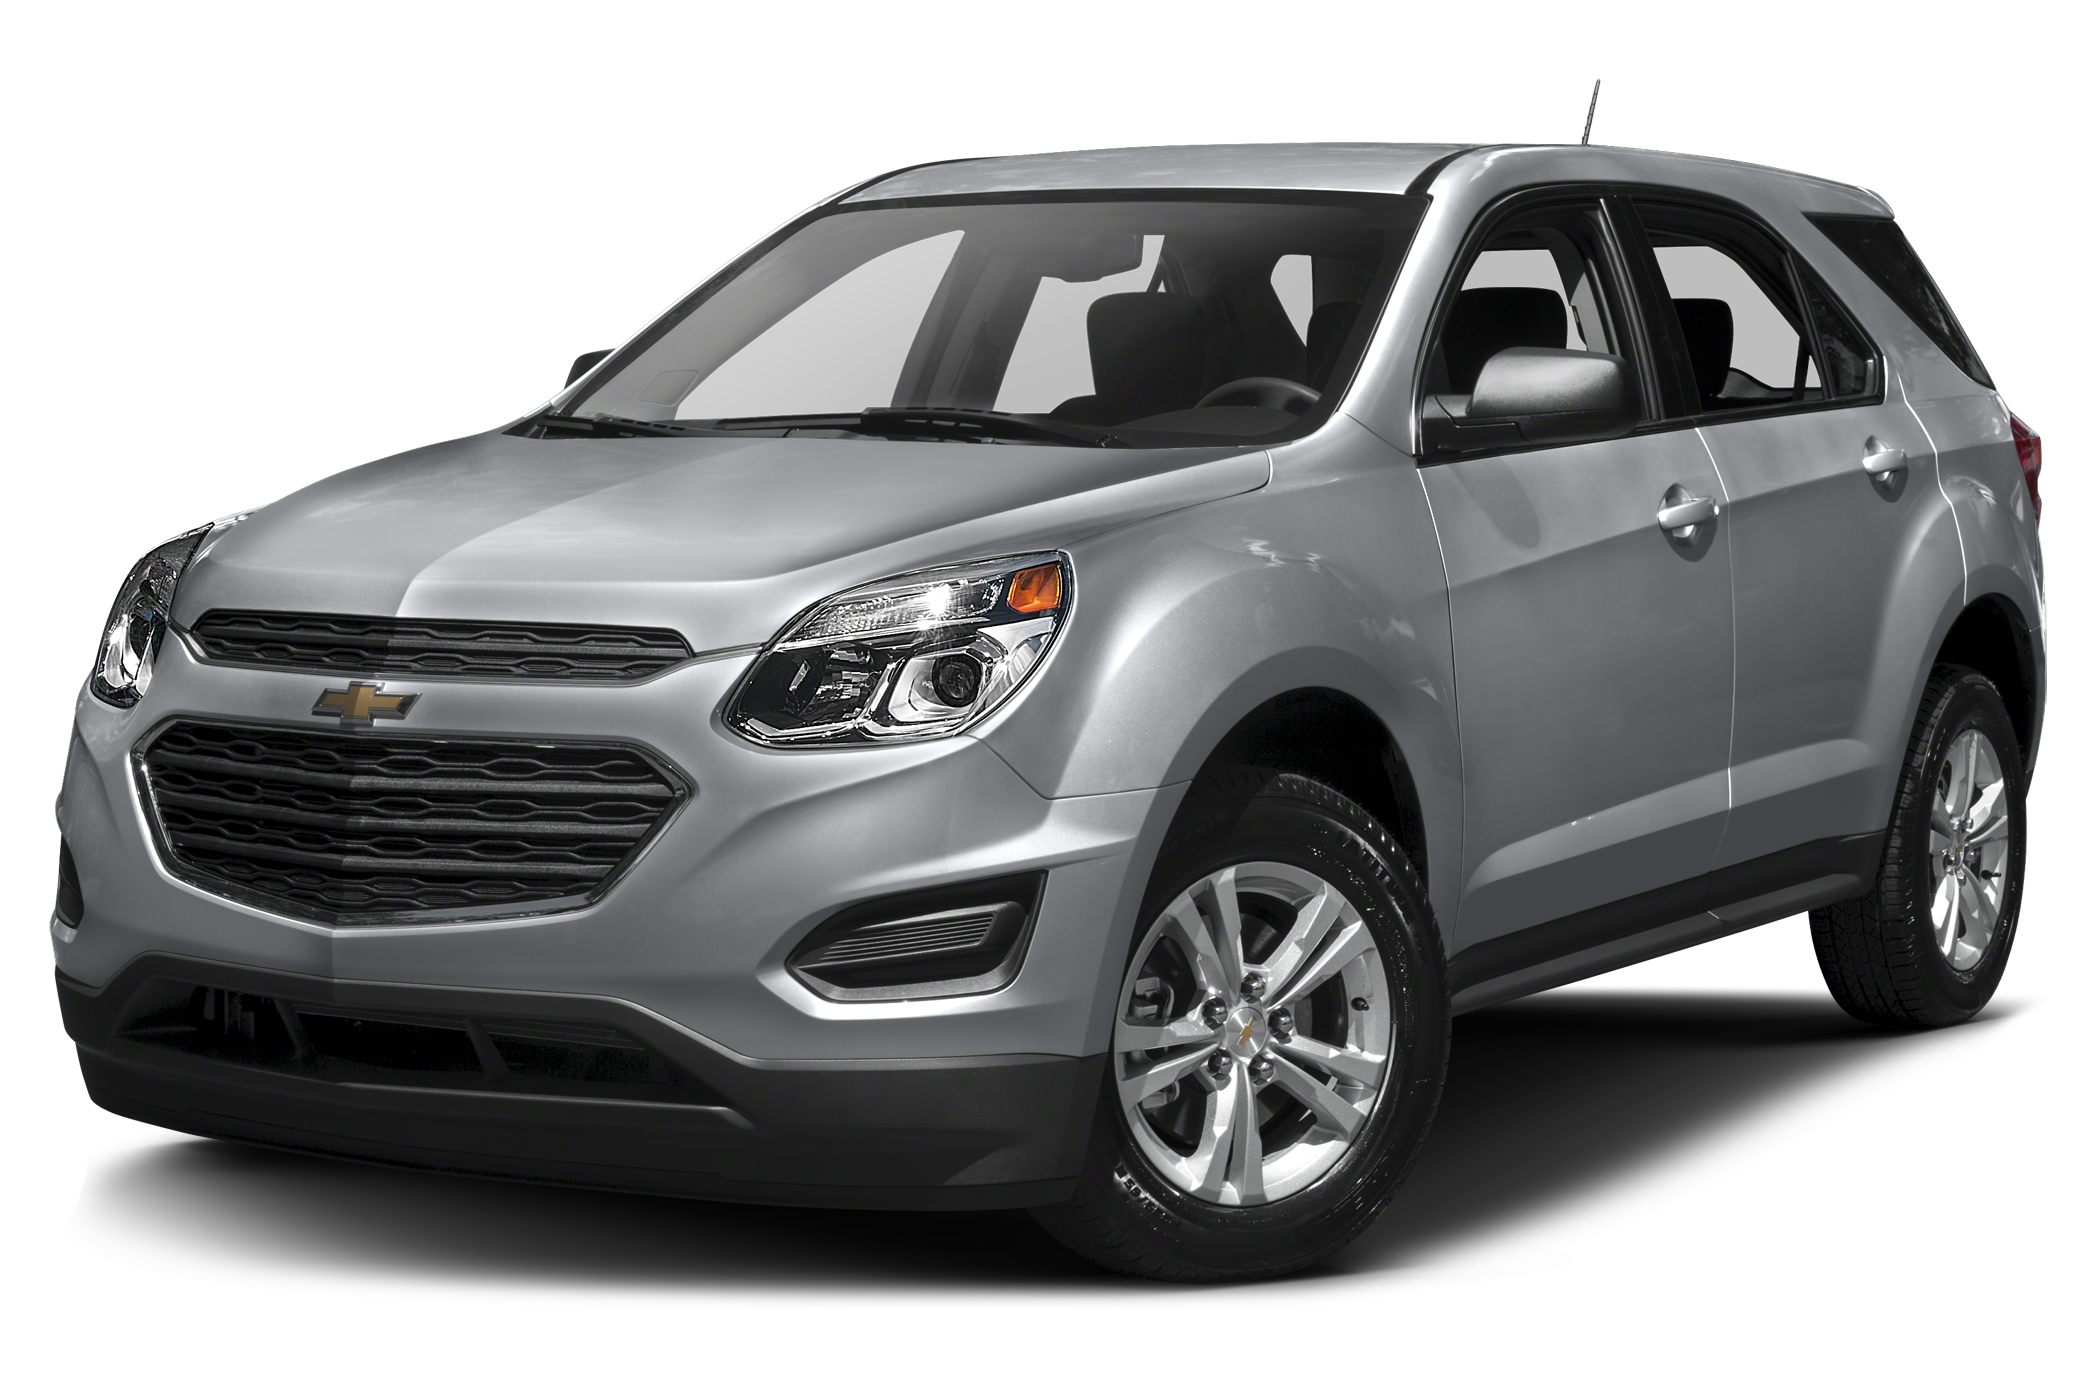 2018 chevy equinox naperville il chevrolet of naperville. Black Bedroom Furniture Sets. Home Design Ideas